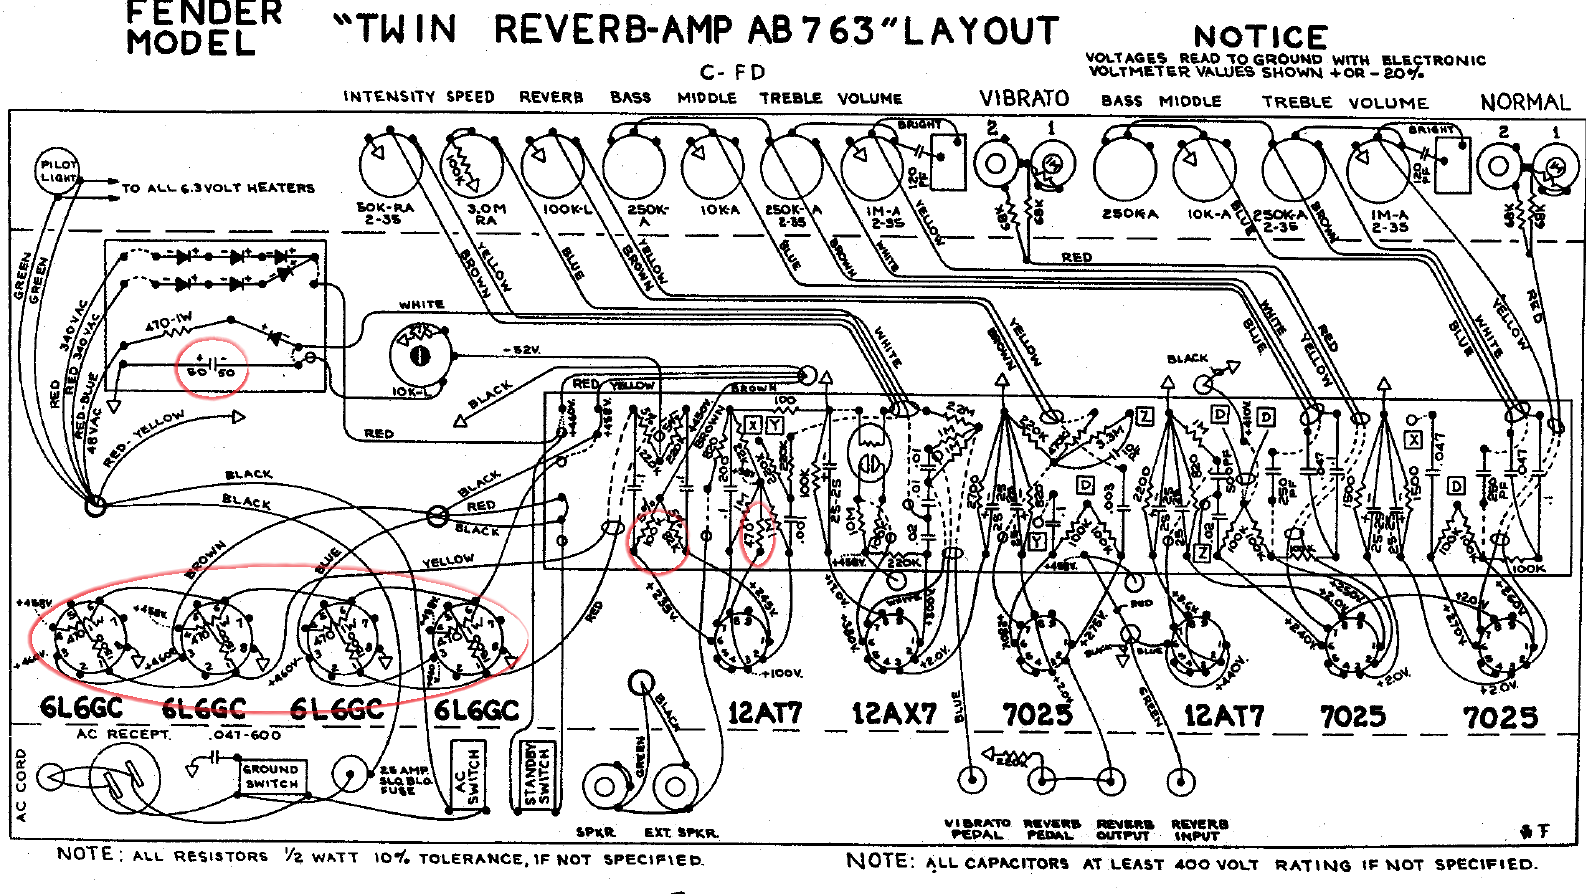 twinreverb ab763 ac568 layout fender twin reverb pinterest twins rh pinterest com fender twin reverb amp owner's manual fender 65 twin reverb reissue service manual